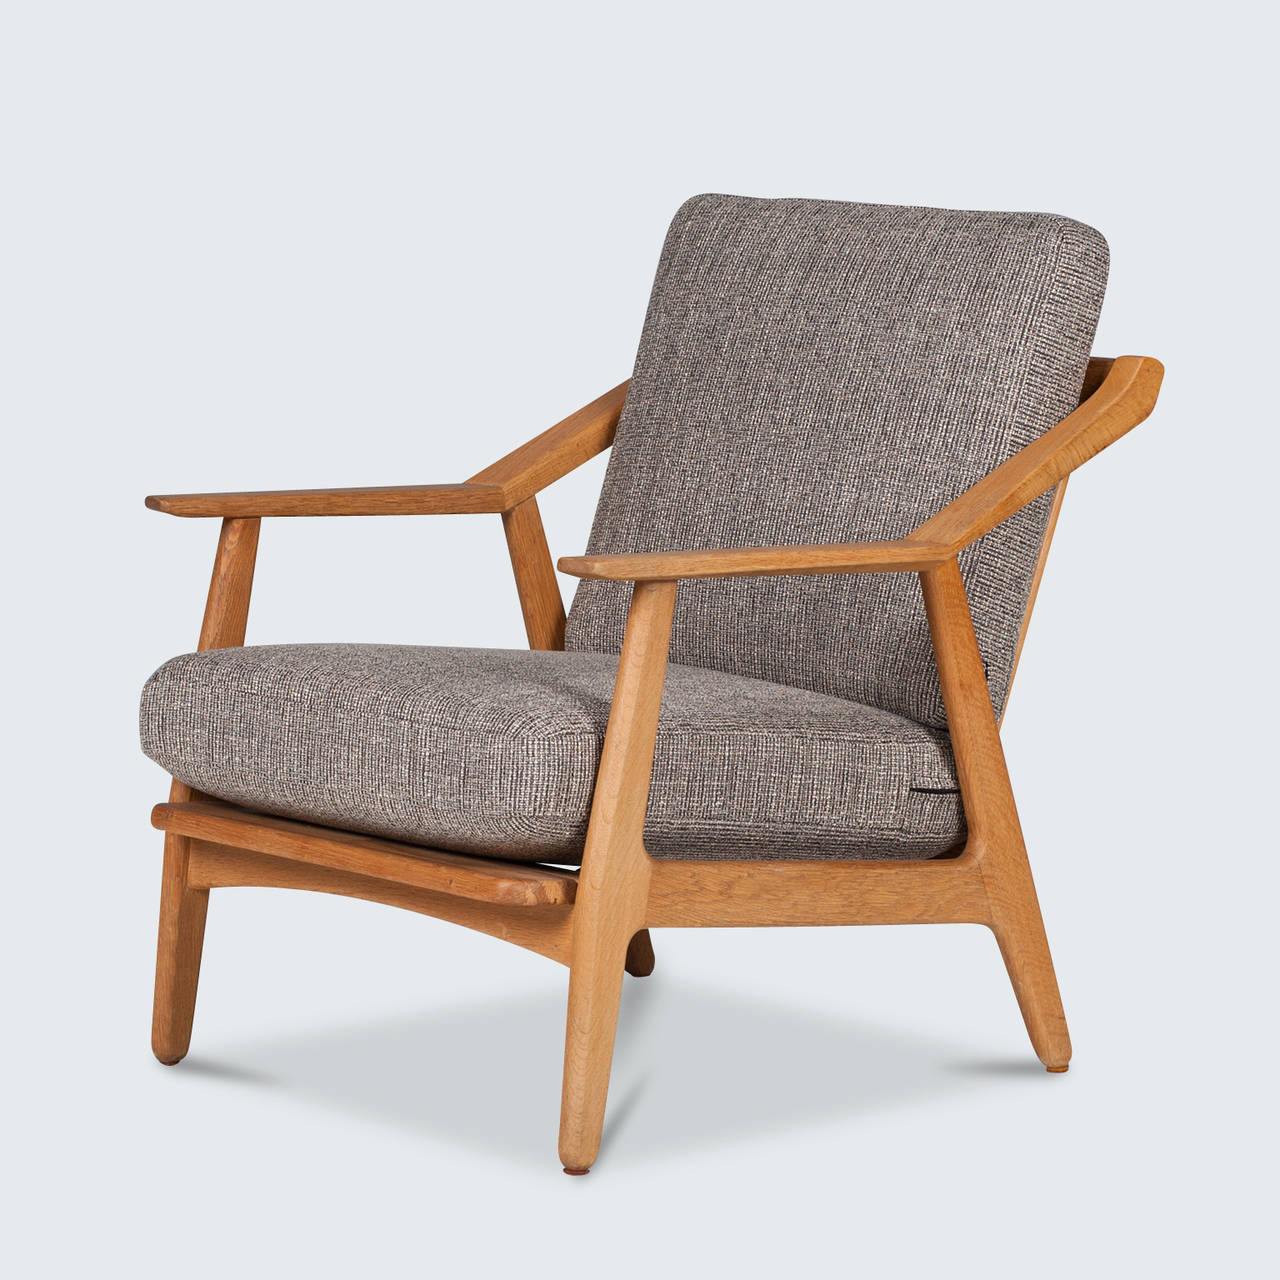 Vintage Danish H Brockmann Petersen Easy Chair In Oak 1955 At 1stdibs